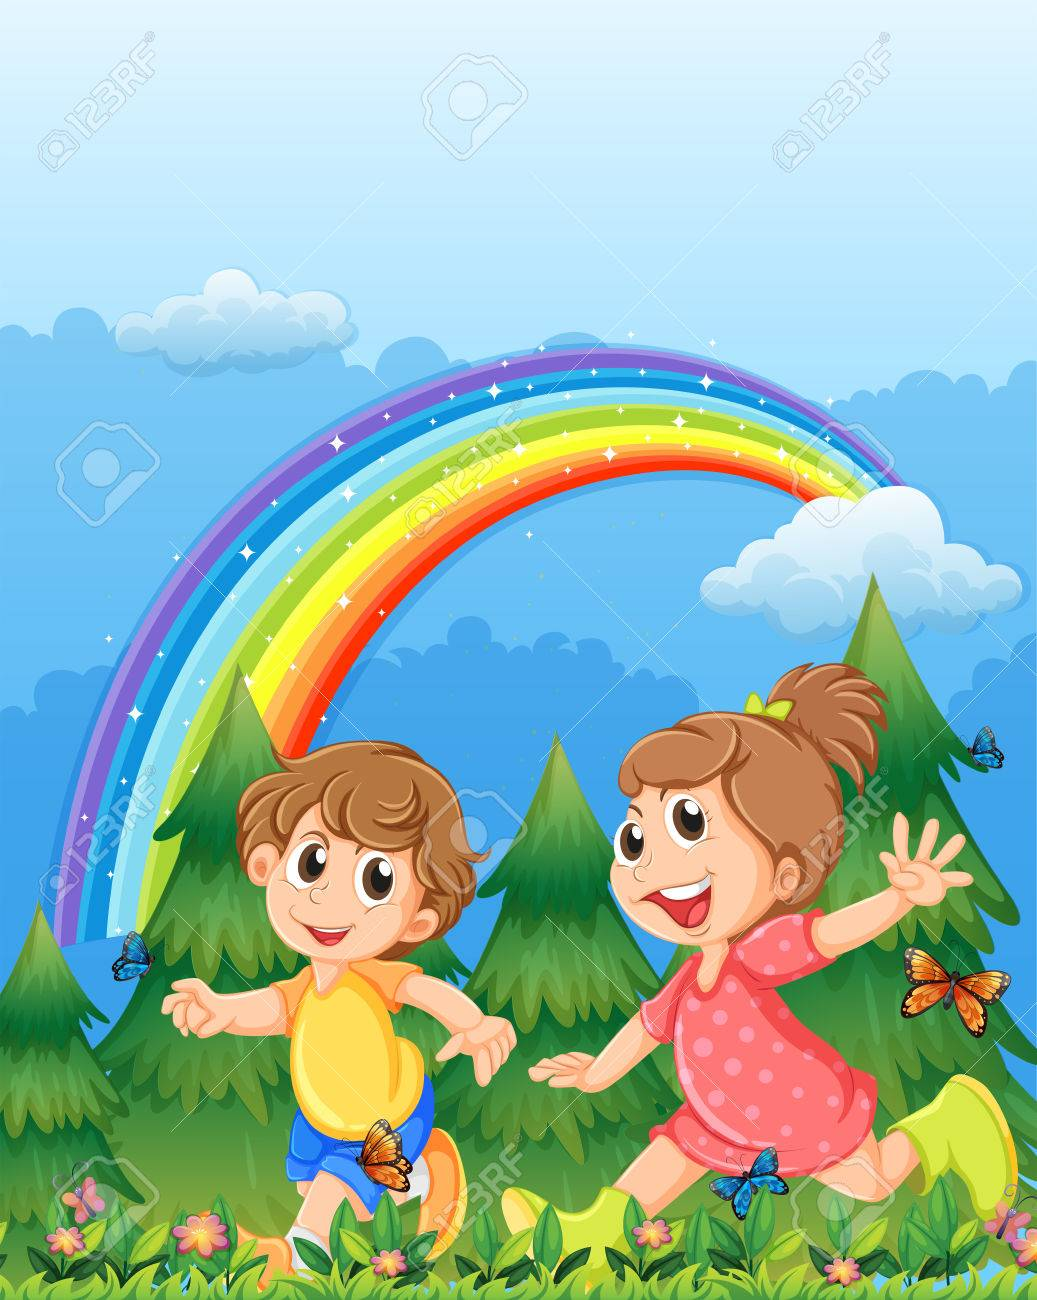 illustration of the kids playing near the garden with a rainbow